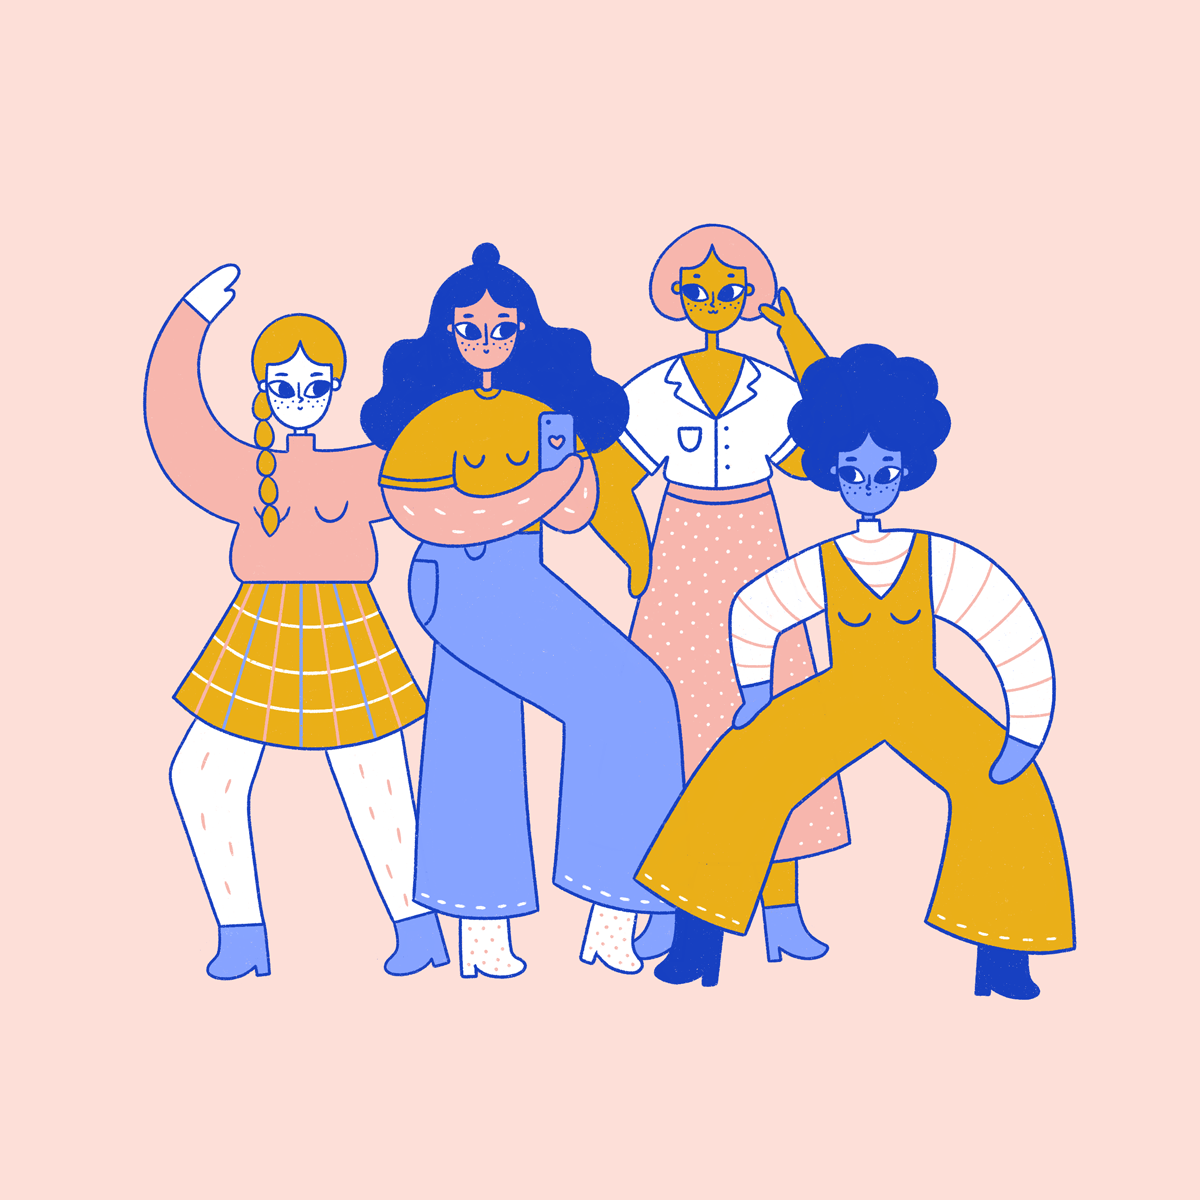 cad_illustration_girlgang.png